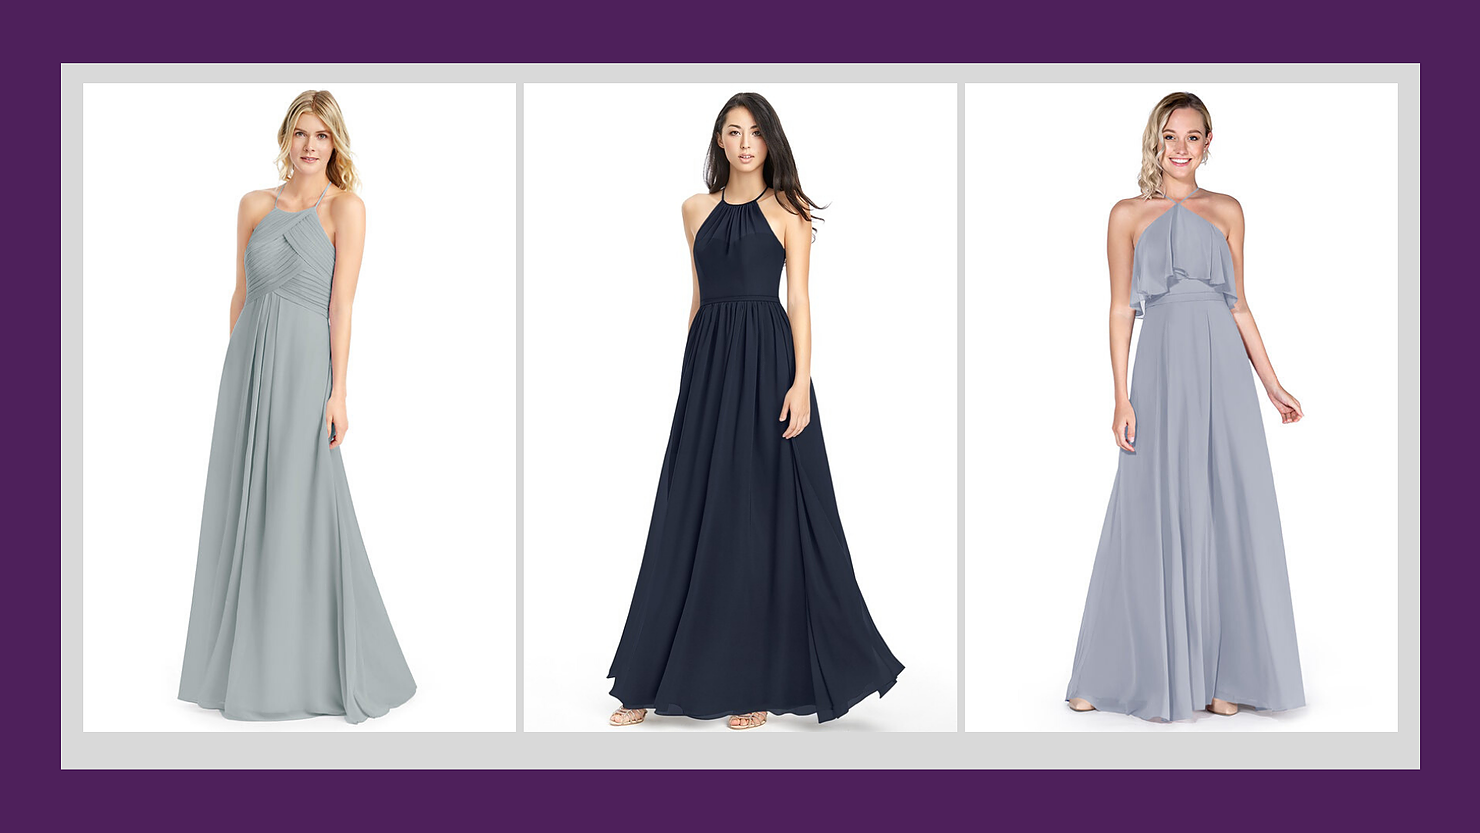 Bridesmaid dresses in gray and navy